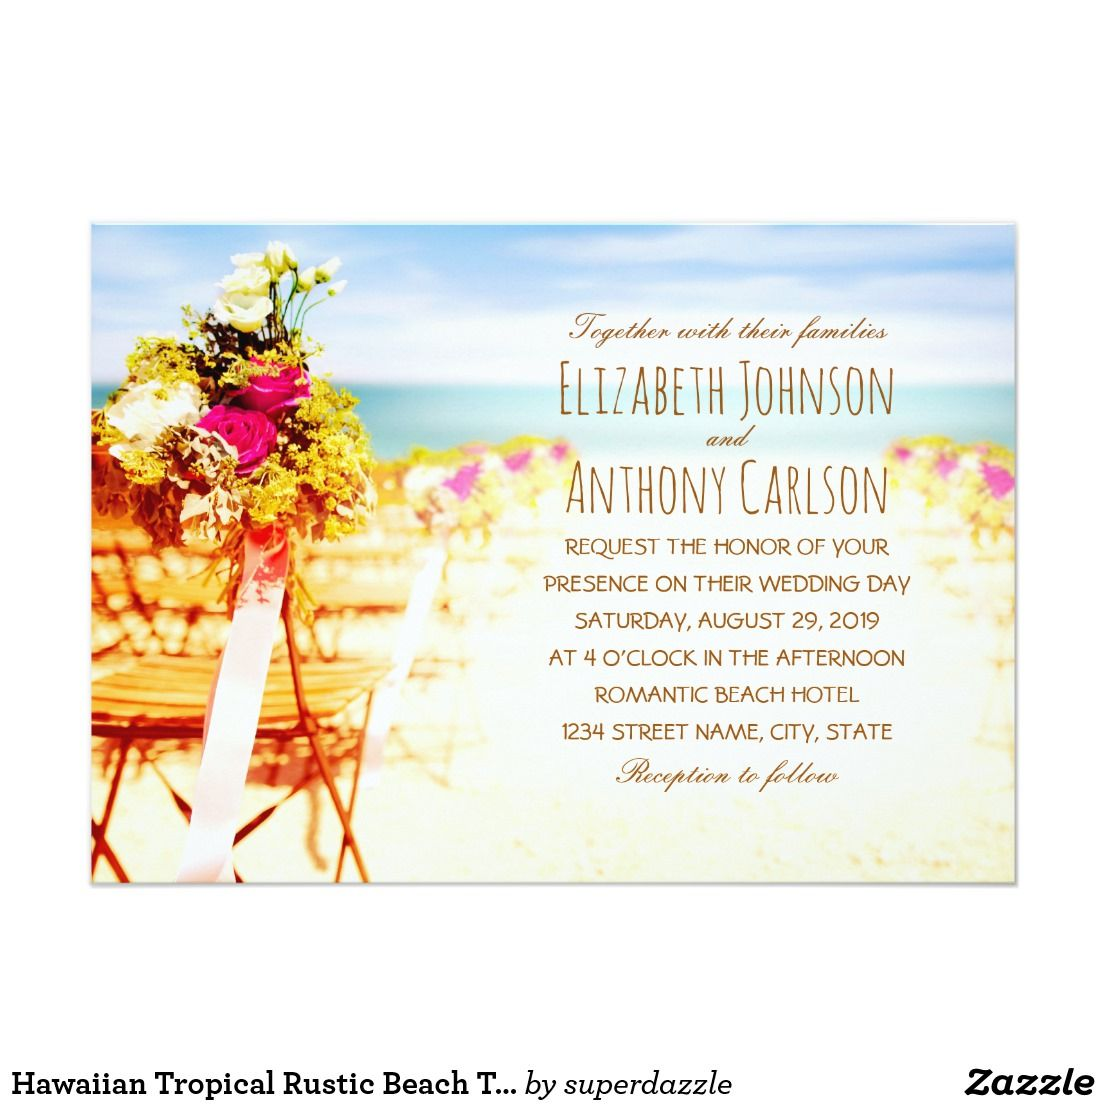 Hawaiian Tropical Rustic Beach Themed Wedding Card Invitations Feature An Beautiful Ocean: Hawaiian Beach Theme Wedding Invitation At Websimilar.org